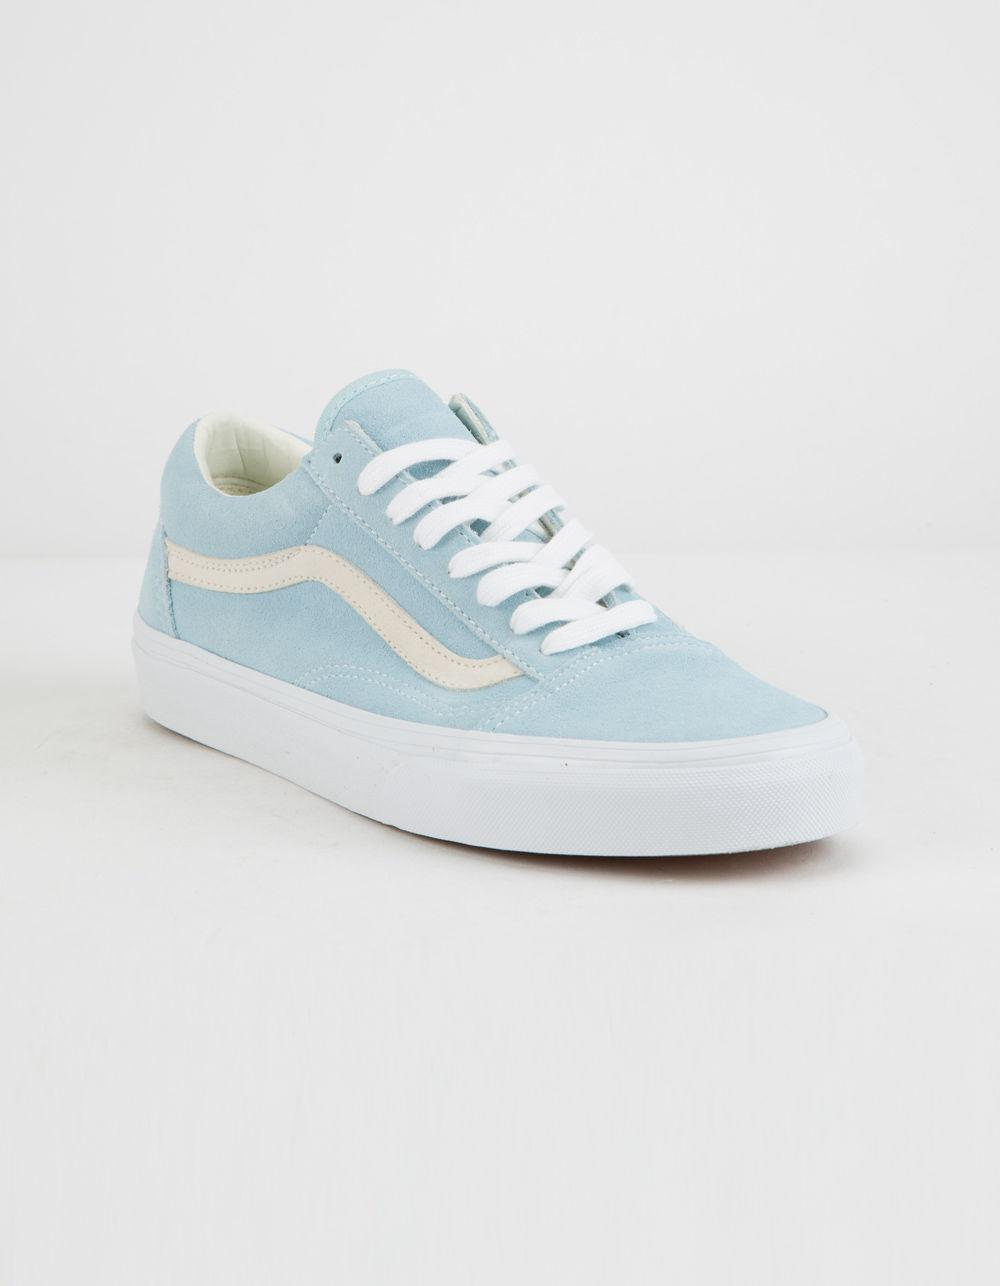 b58a5e2a17bbcb Lyst - Vans Pastel Suede Old Skool Crystal Blue Womens Shoes in Blue